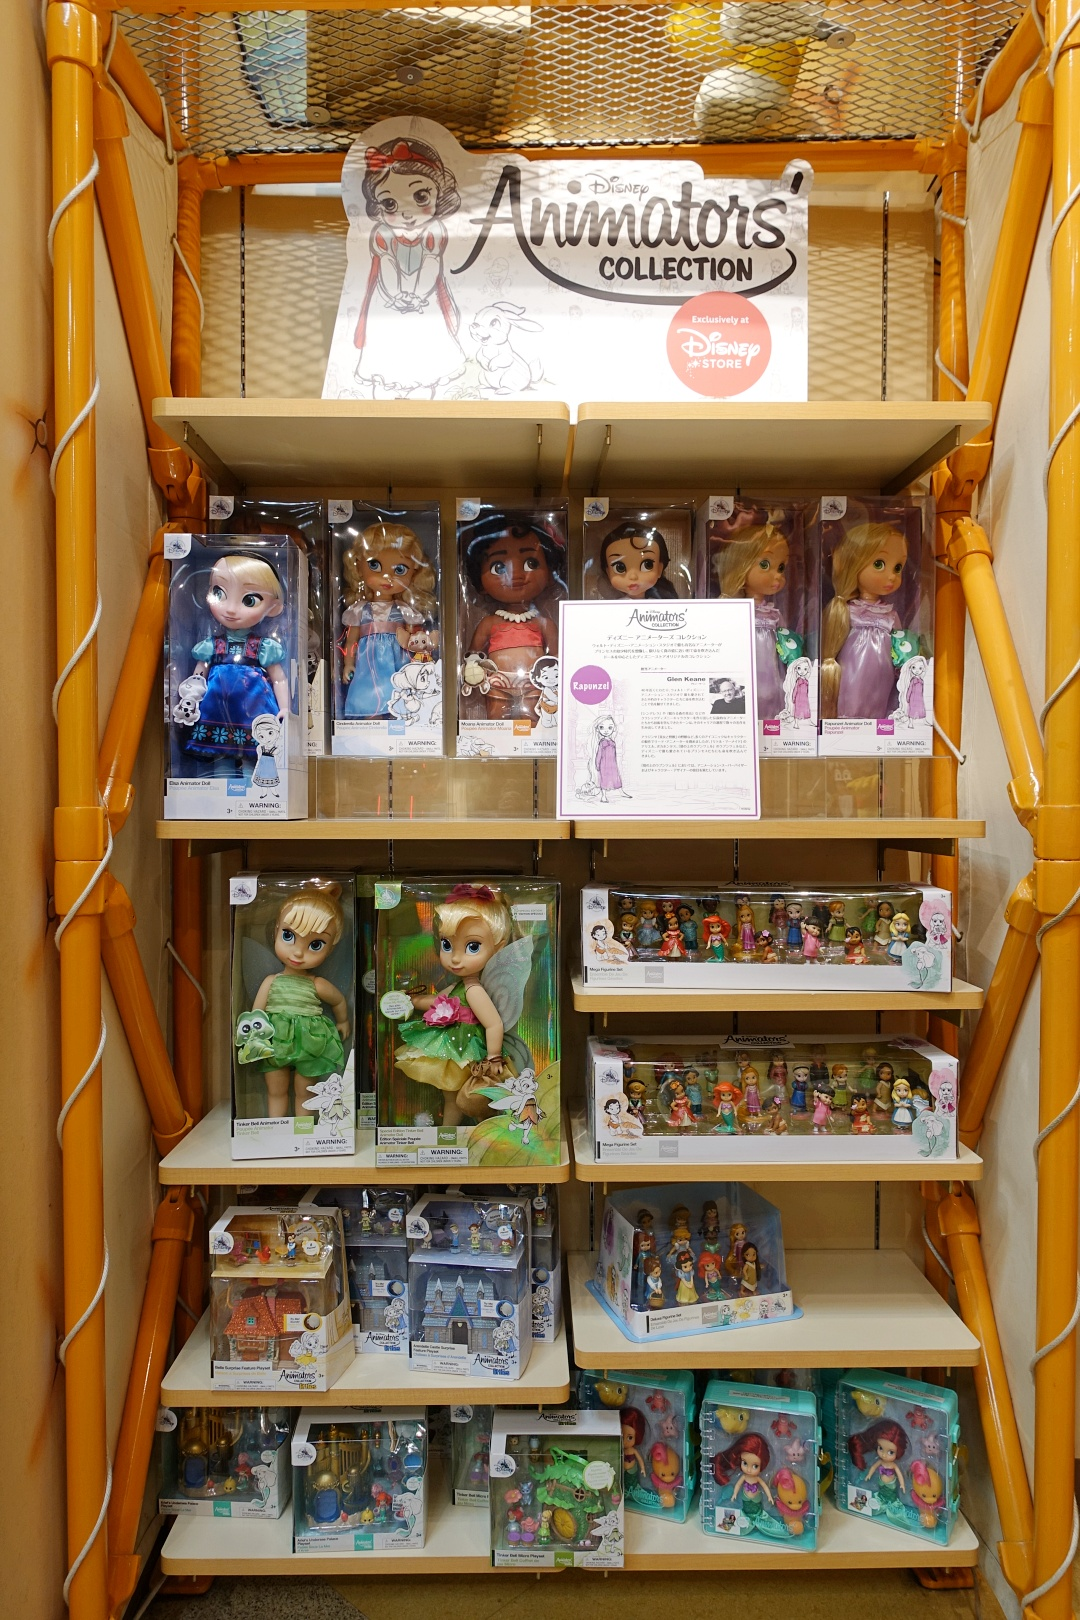 Japan Osaka Disney Store (Umeda HEP FIVE) - Animators' Collection | joanne-khoo.com